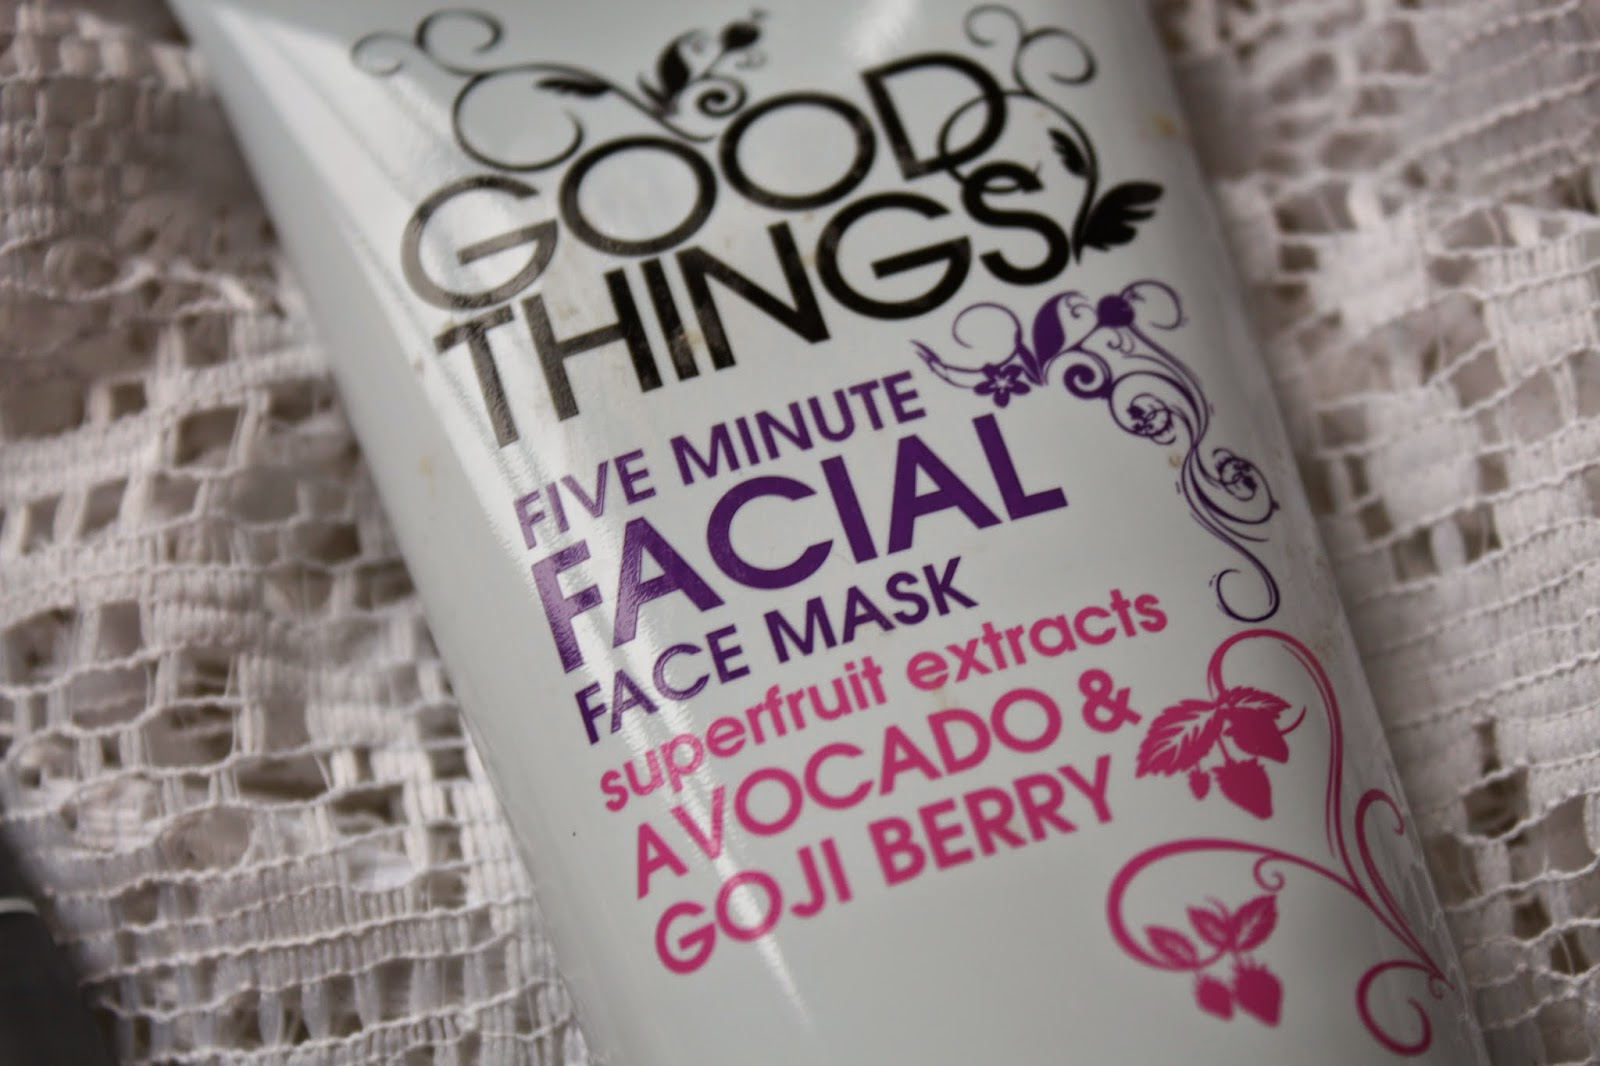 Good Things Five Minute Facial